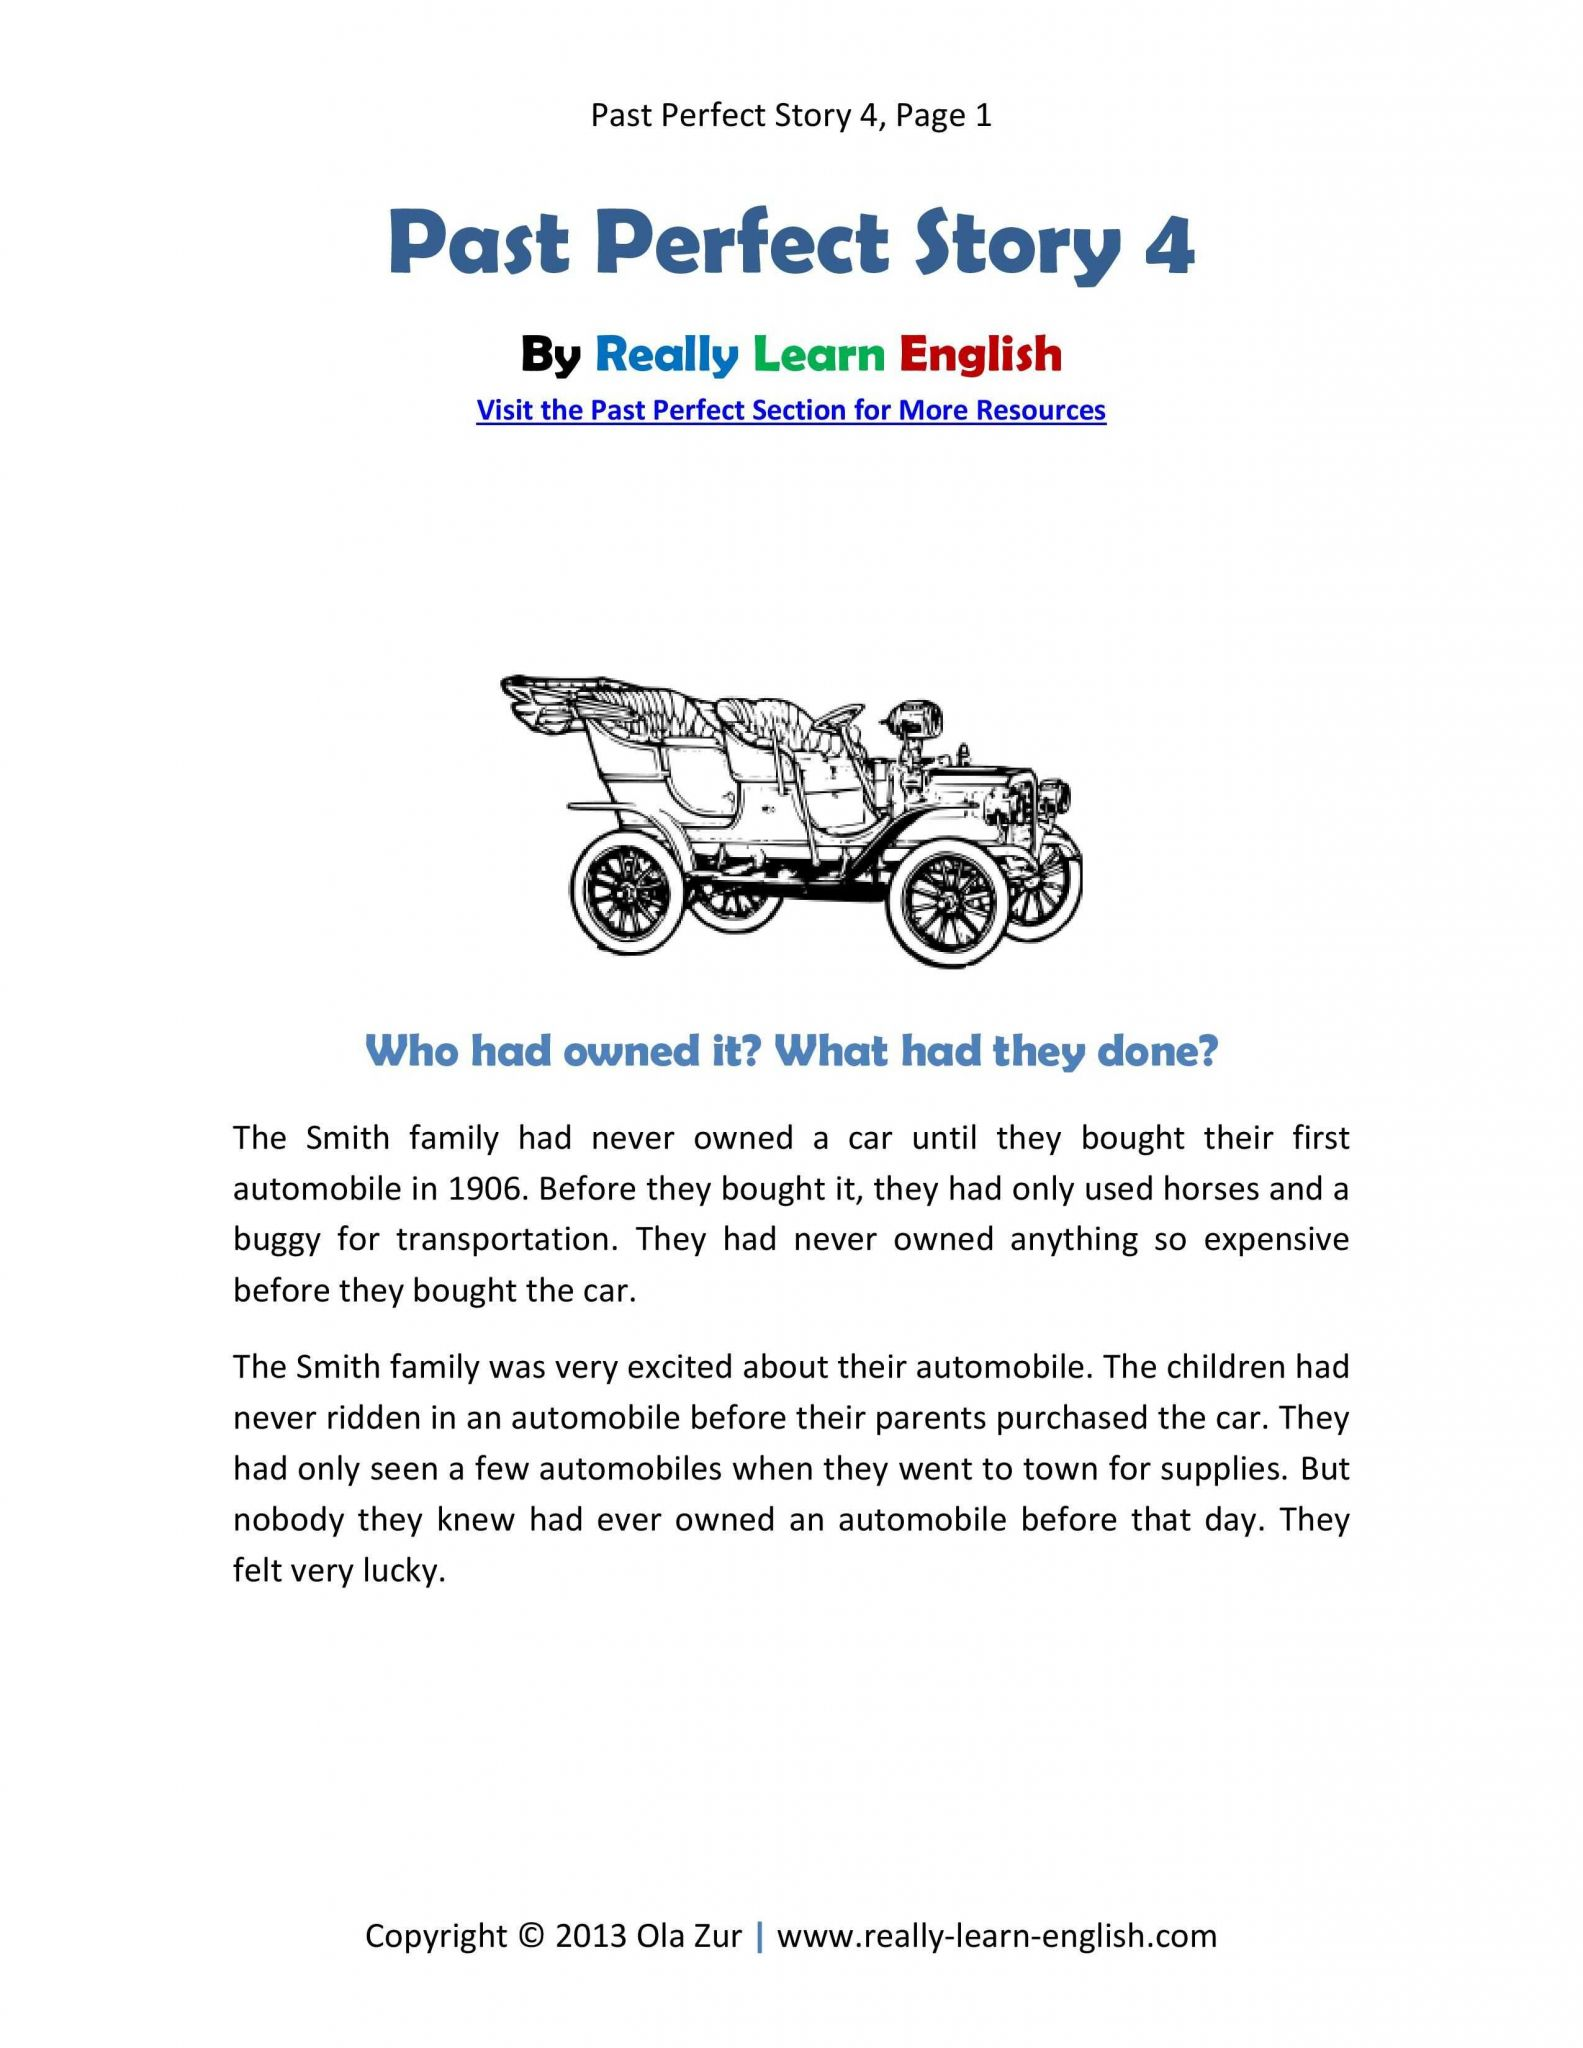 Present Progressive Worksheets and Free Printable Story and Worksheets to Practice the English Past